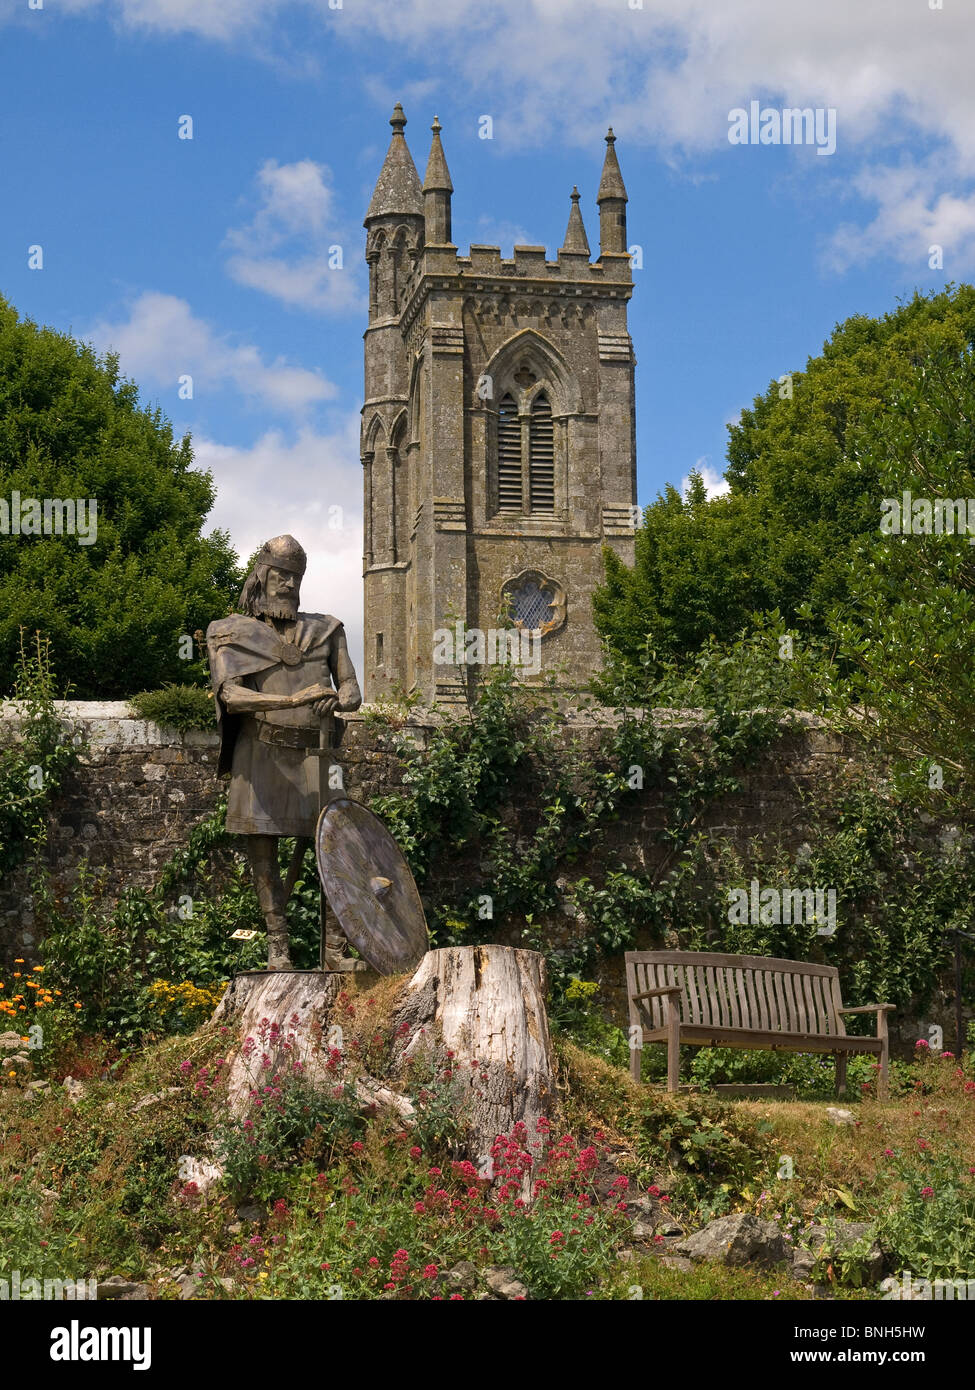 Statue of King Alfred in the ruins of Shaftesbury Abbey Dorset England UK - Stock Image